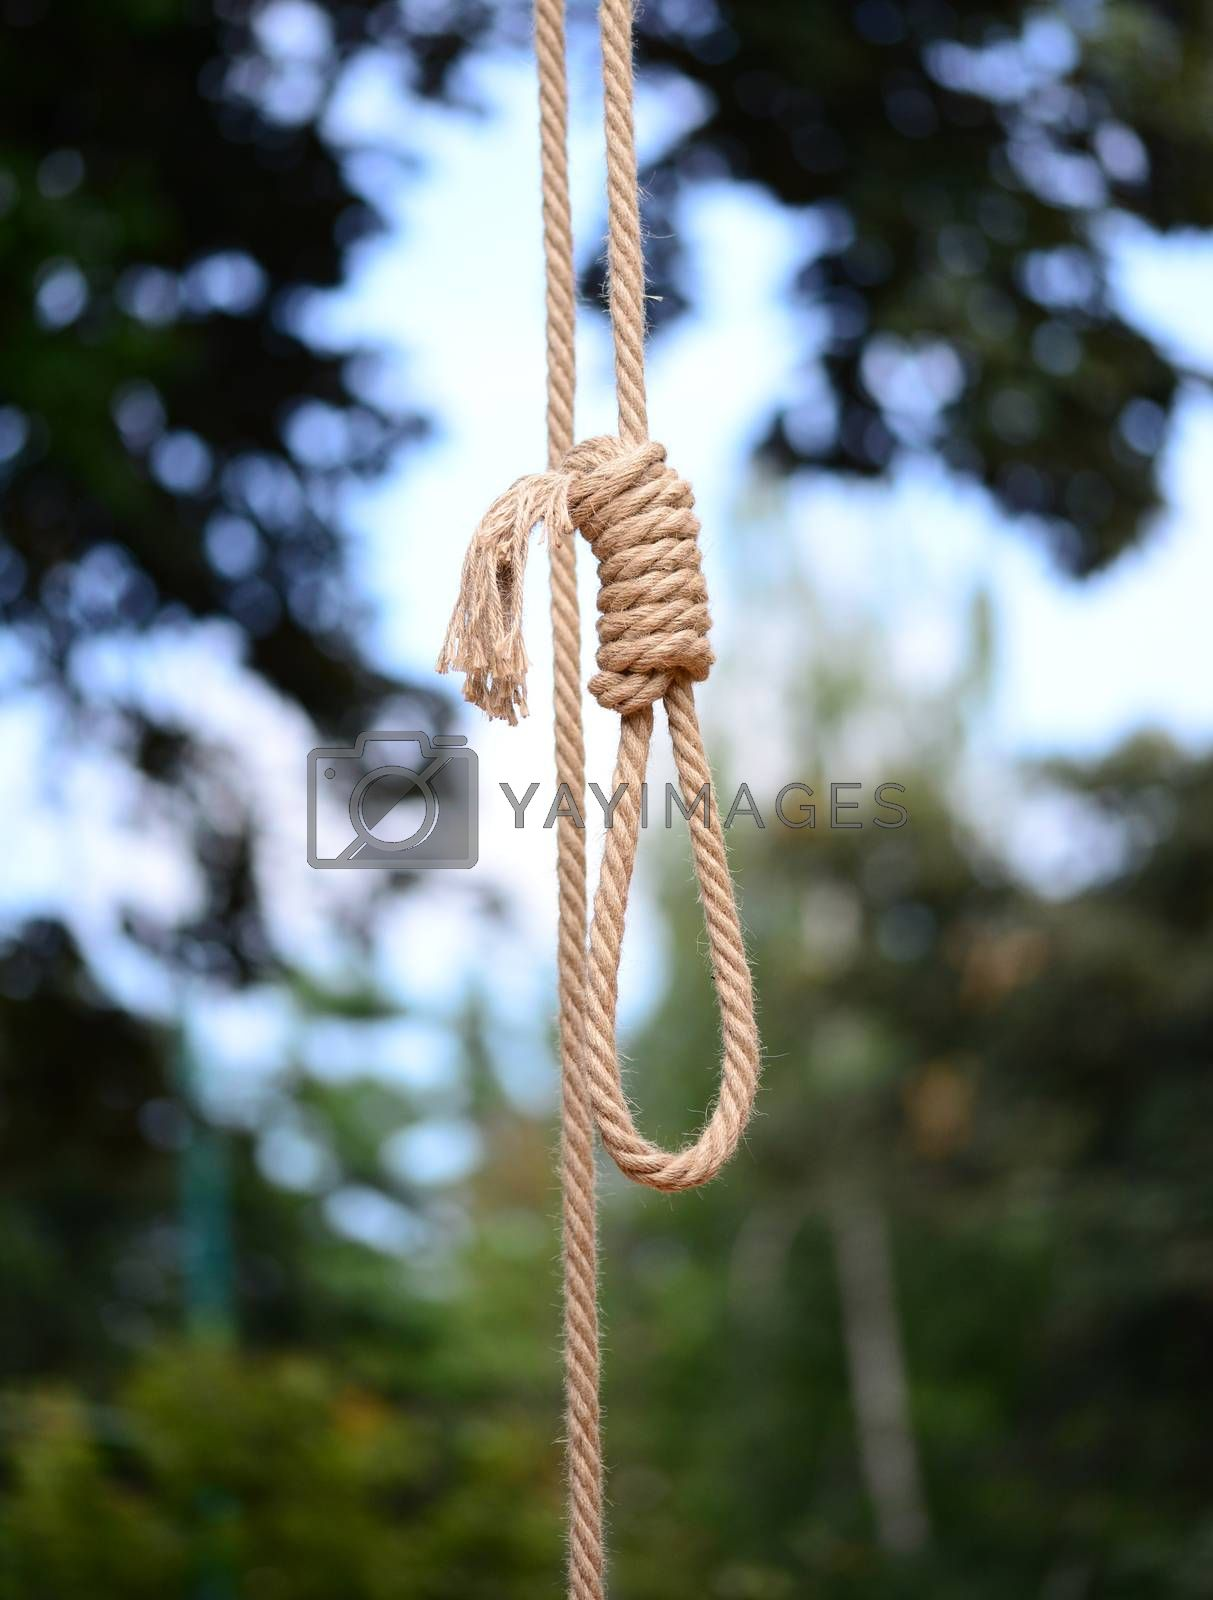 Royalty free image of Gallows Hanging Rope by tony4urban